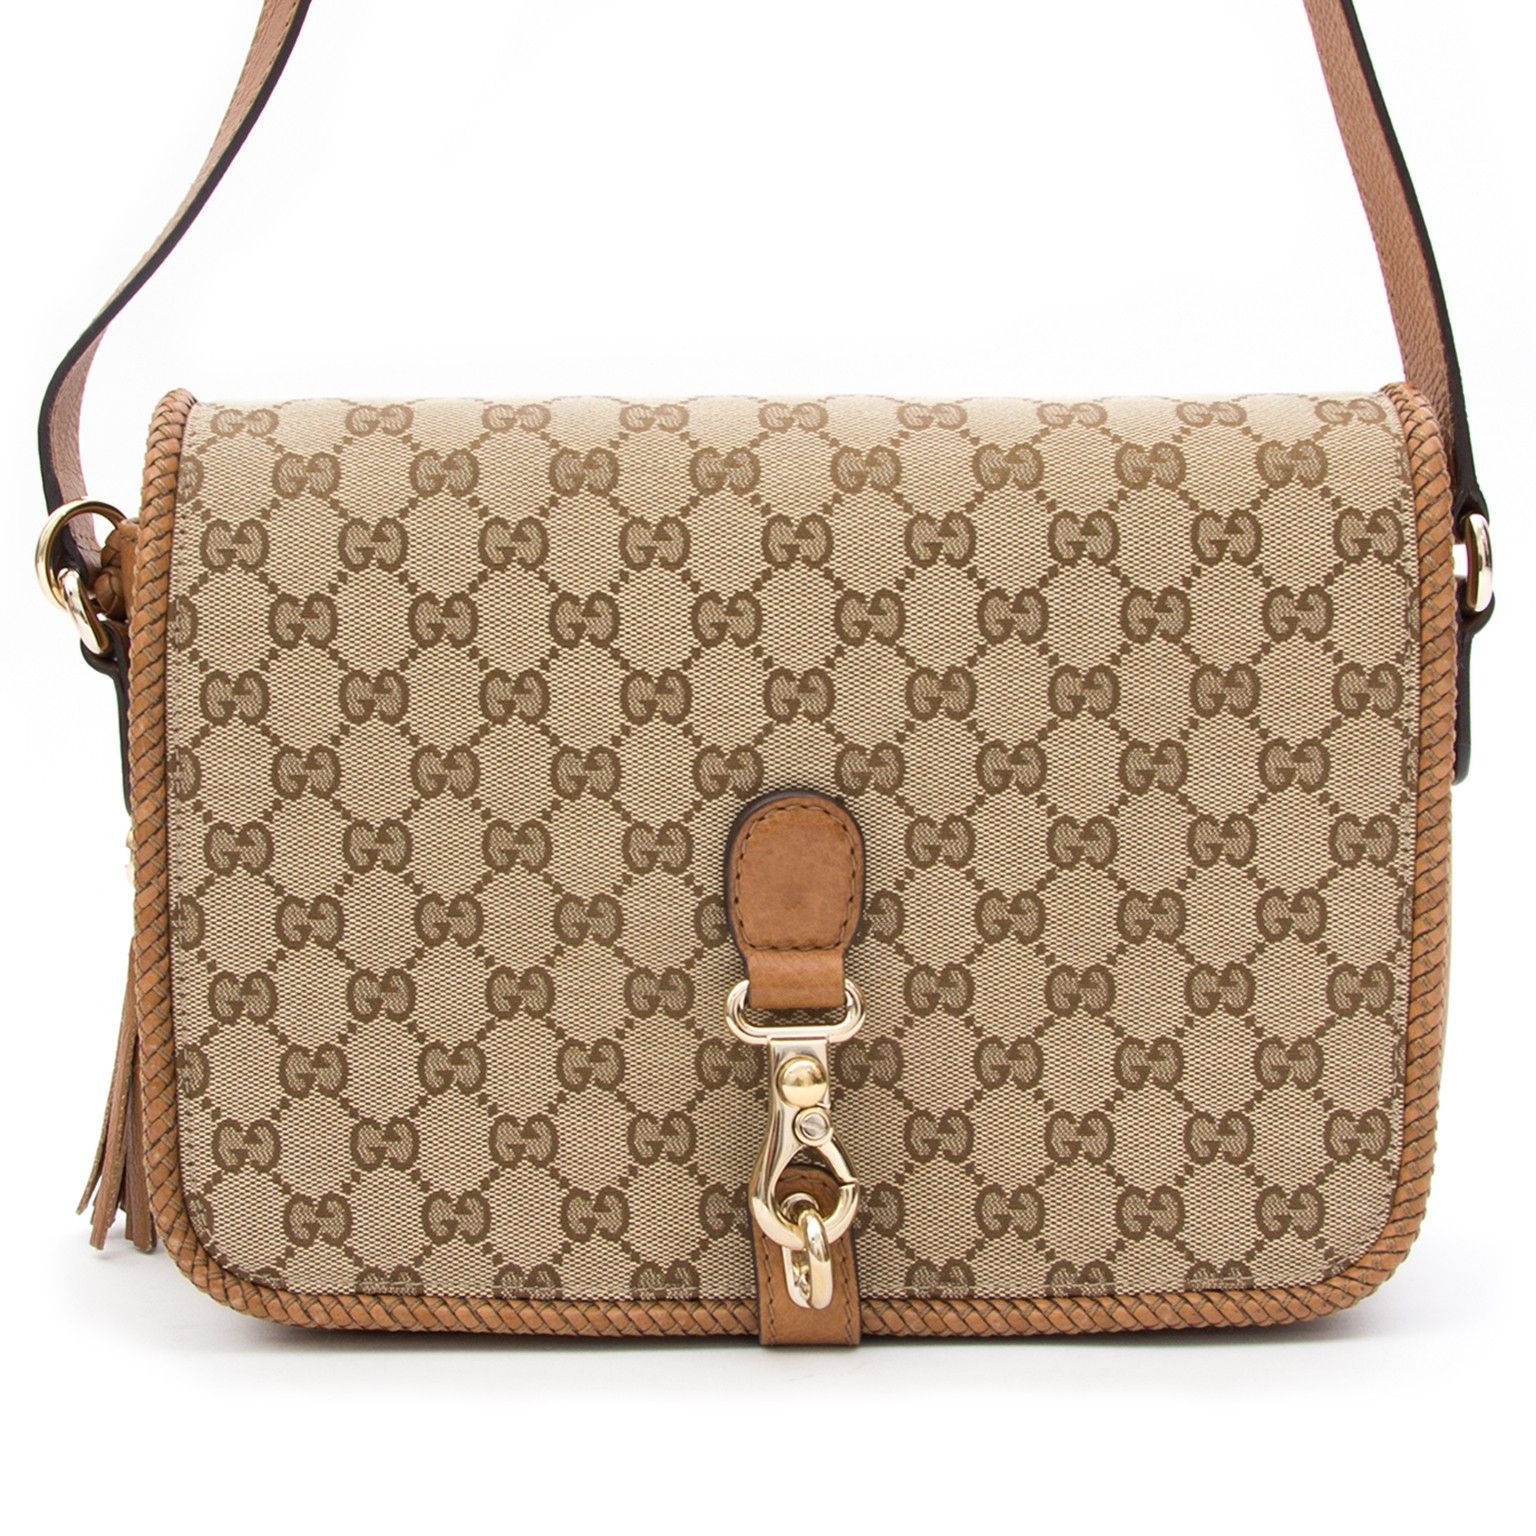 e7d6f3968a8 Buy authentic secondhand Gucci bags at the right price at LabelLOV vintage  webshop. Gucci Marrakech Medium Messenger Bag